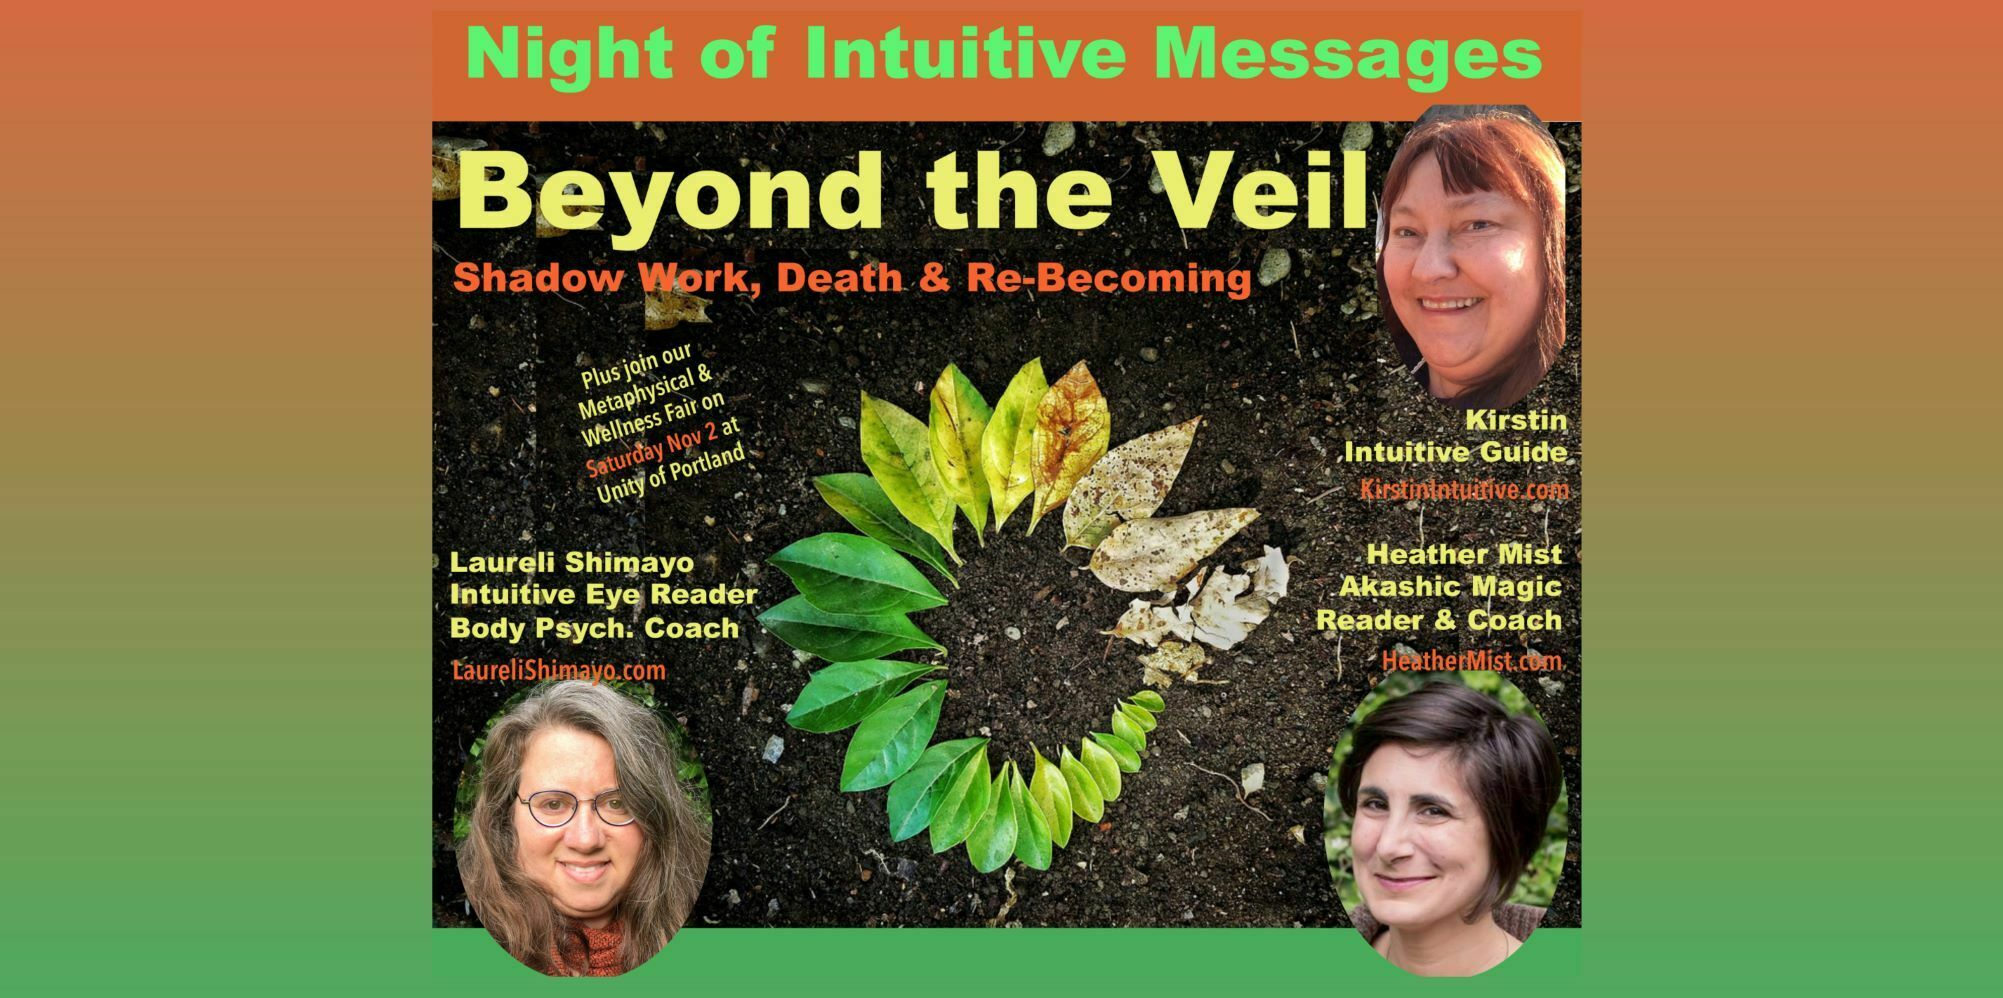 Night of Intuitive Messages - Go Beyond the Veil to Rewrite Your Life